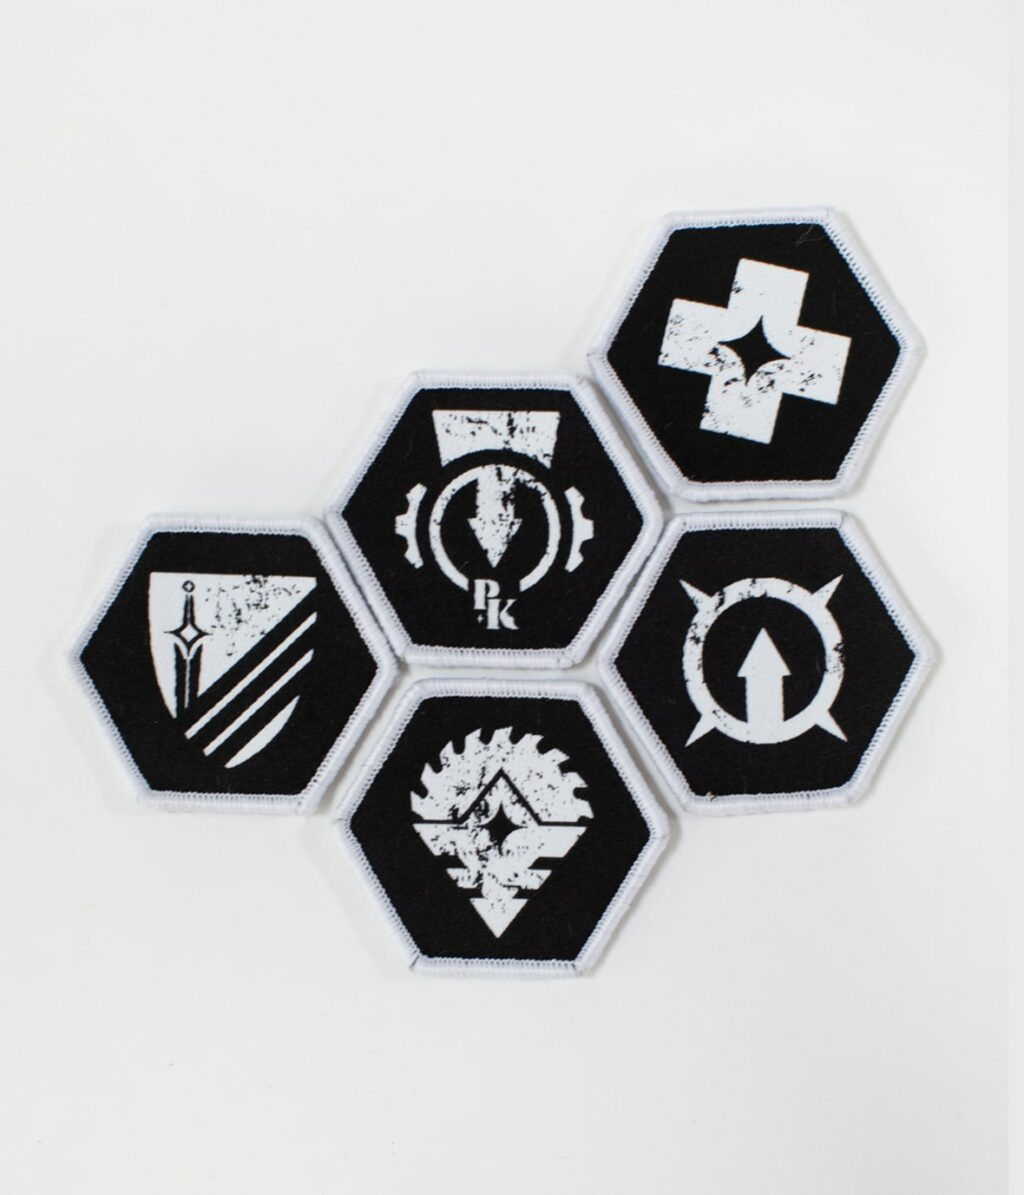 Knights Gears Patch Kit